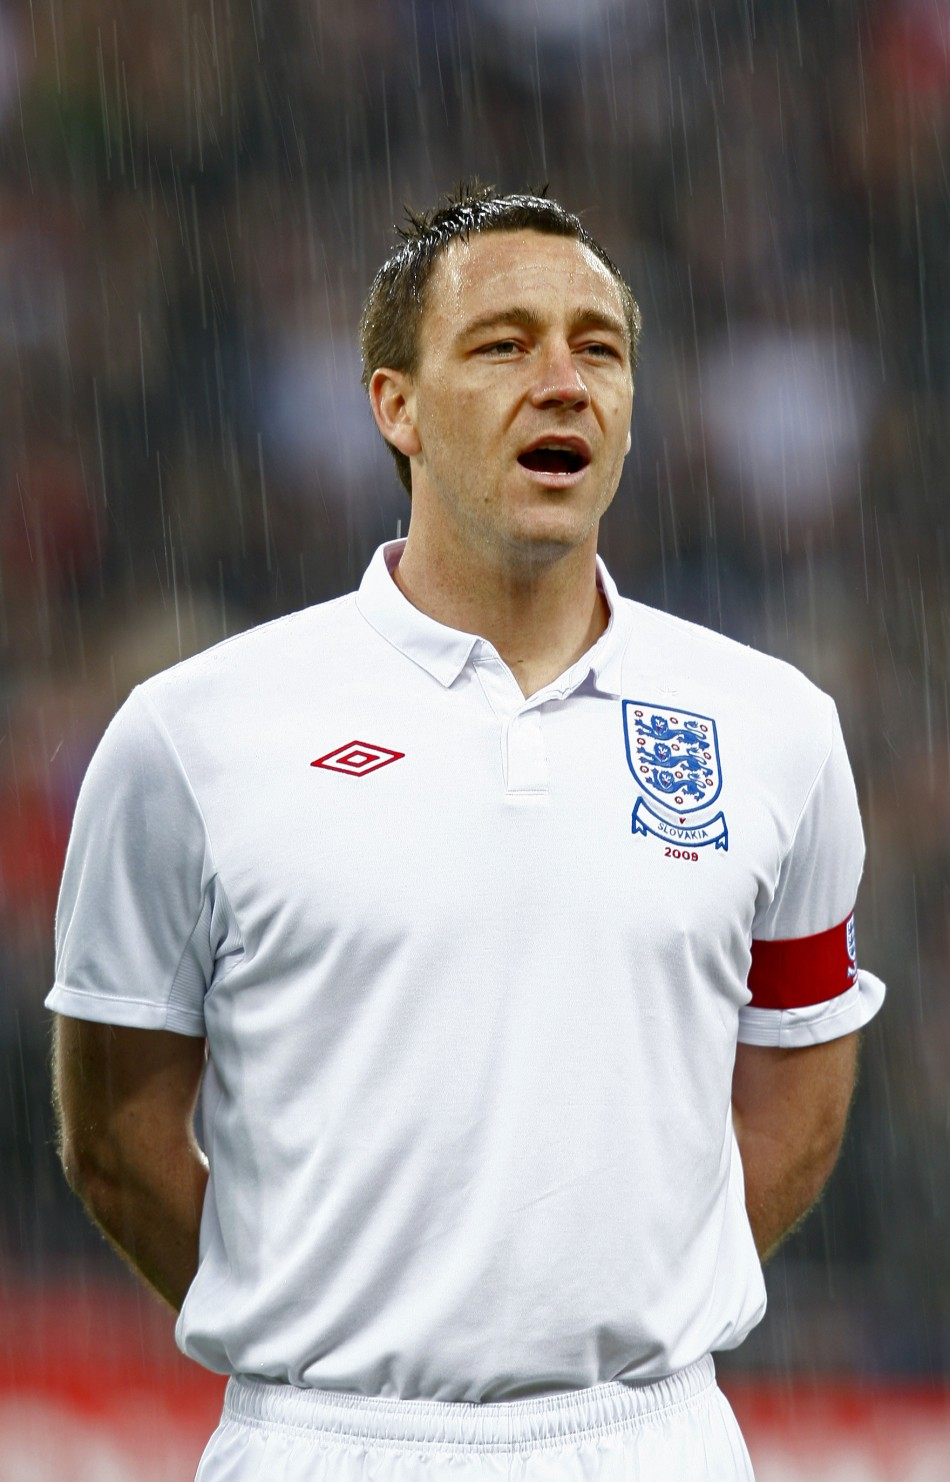 England's captain John Terry sings the national anthem in the rain before their international friendly soccer match against Slovakia in London in 2009.